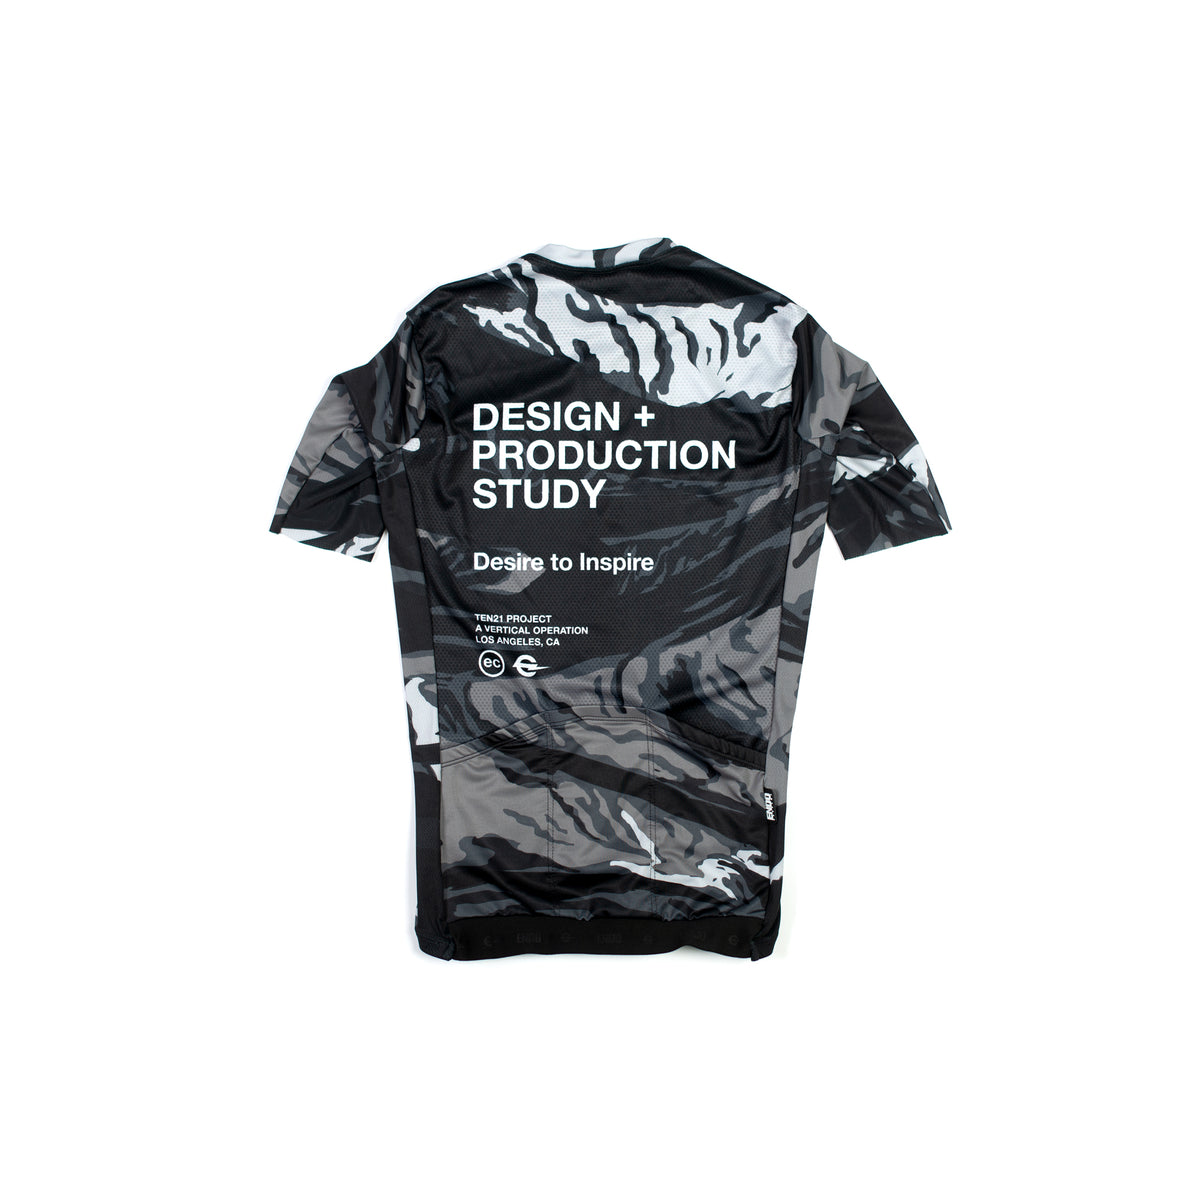 TEN21 - LADERA 2.0 JERSEY - GREY CAMO